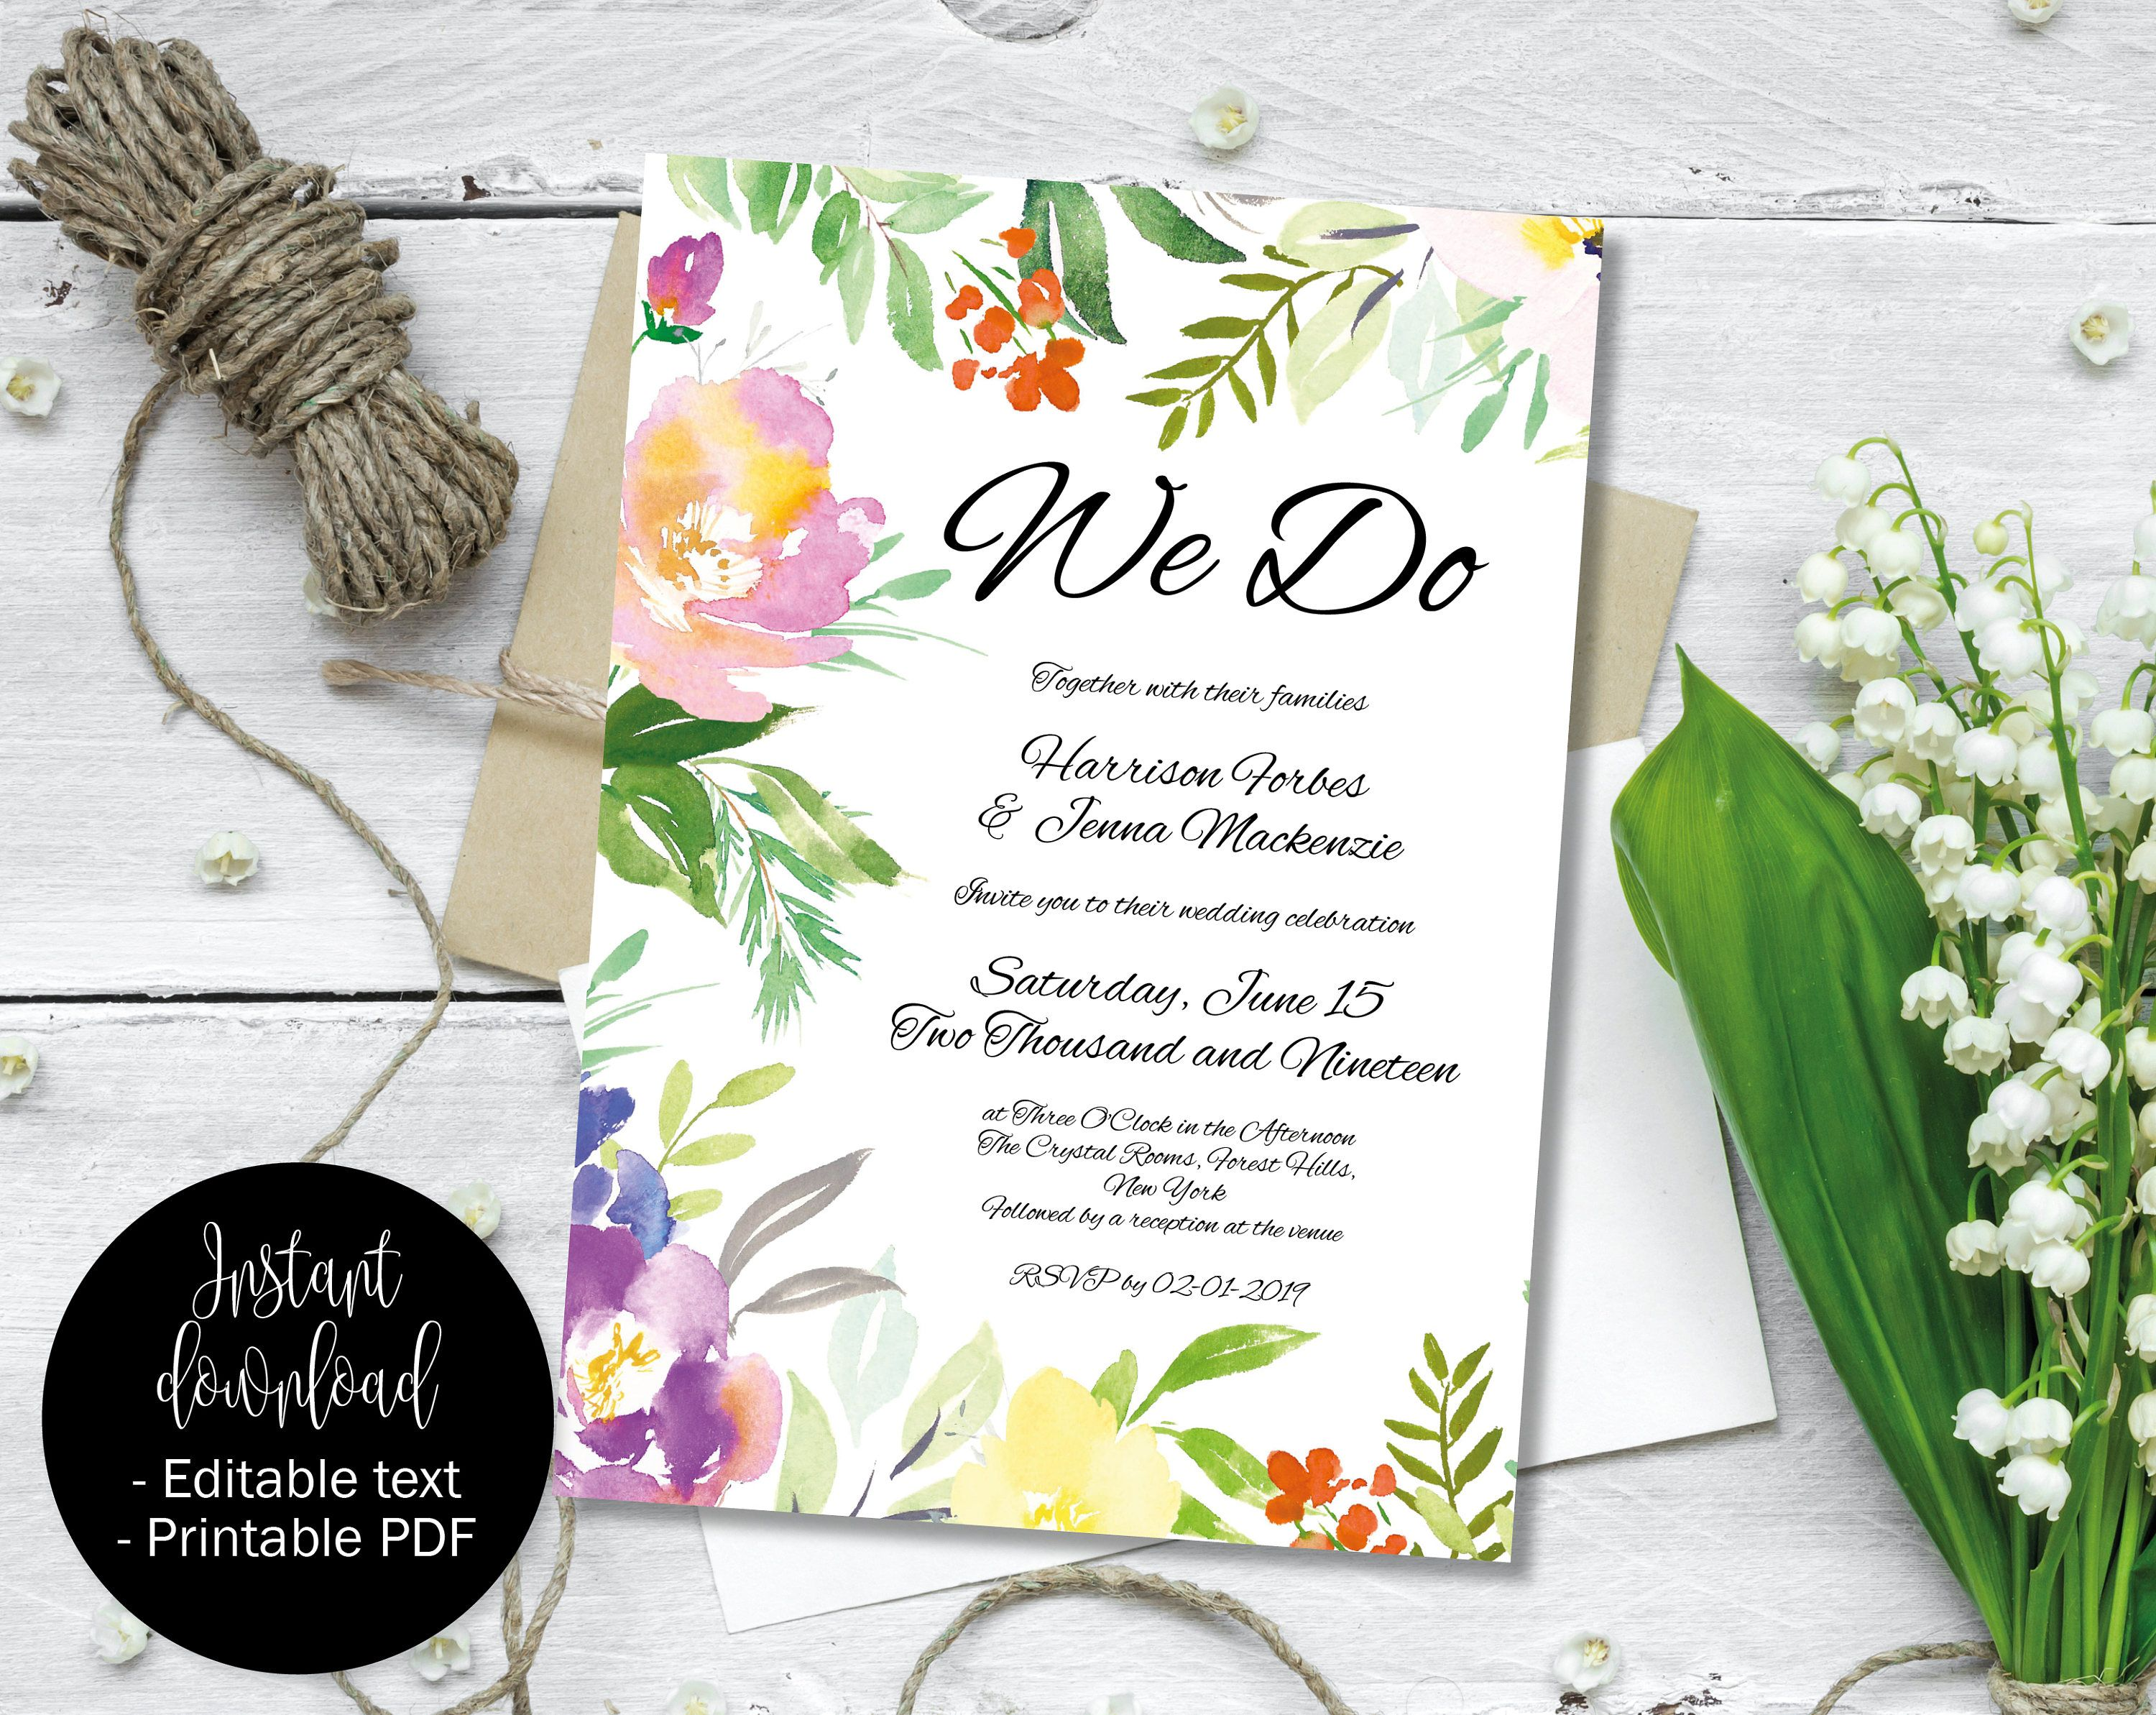 Invitation Wedding Template Printable Editable DIY PDF Invite Day Evening